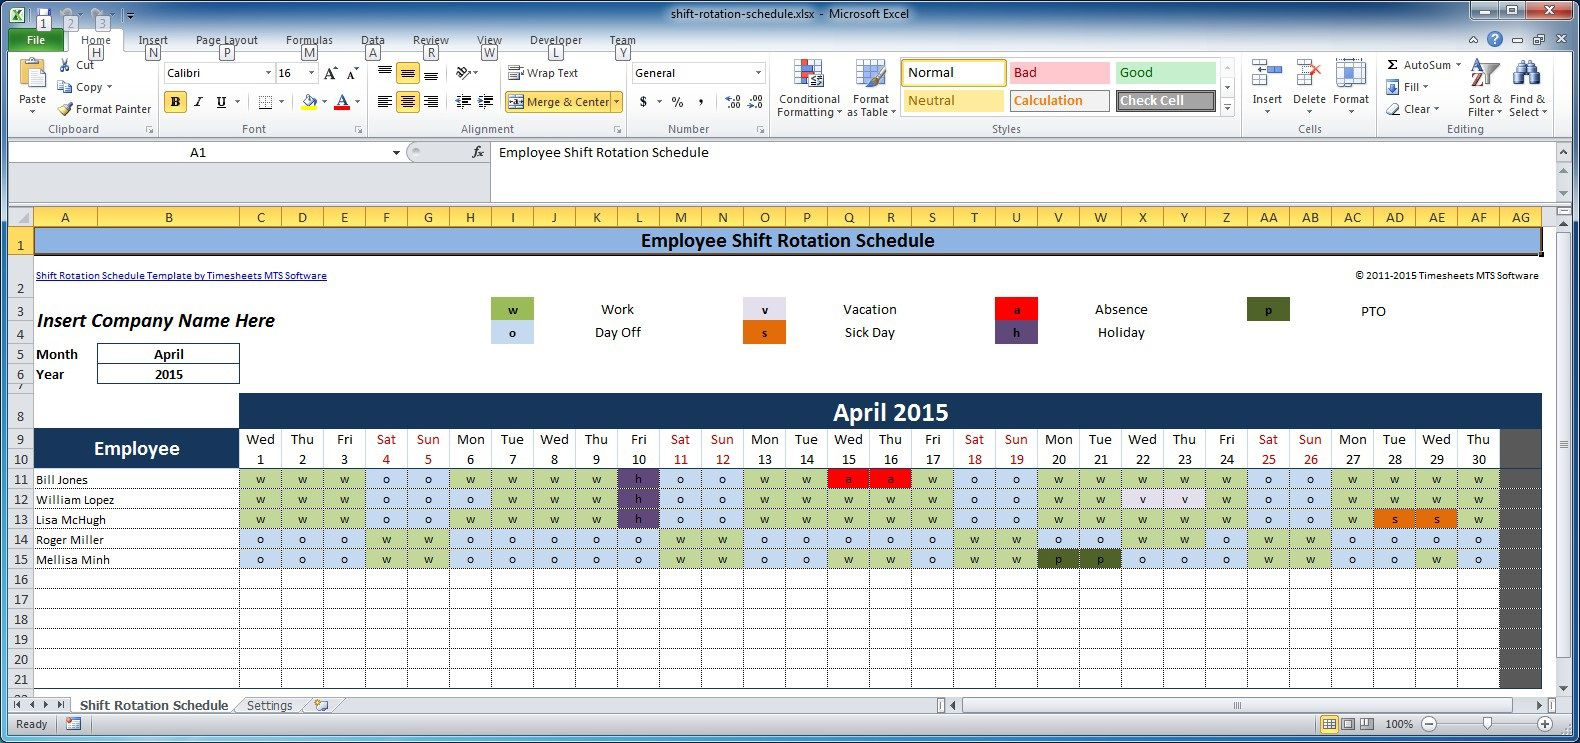 005 Archaicawful Free Staff Scheduling Template Highest Clarity  Templates Excel Holiday Planner Printable Weekly Employee Work ScheduleFull